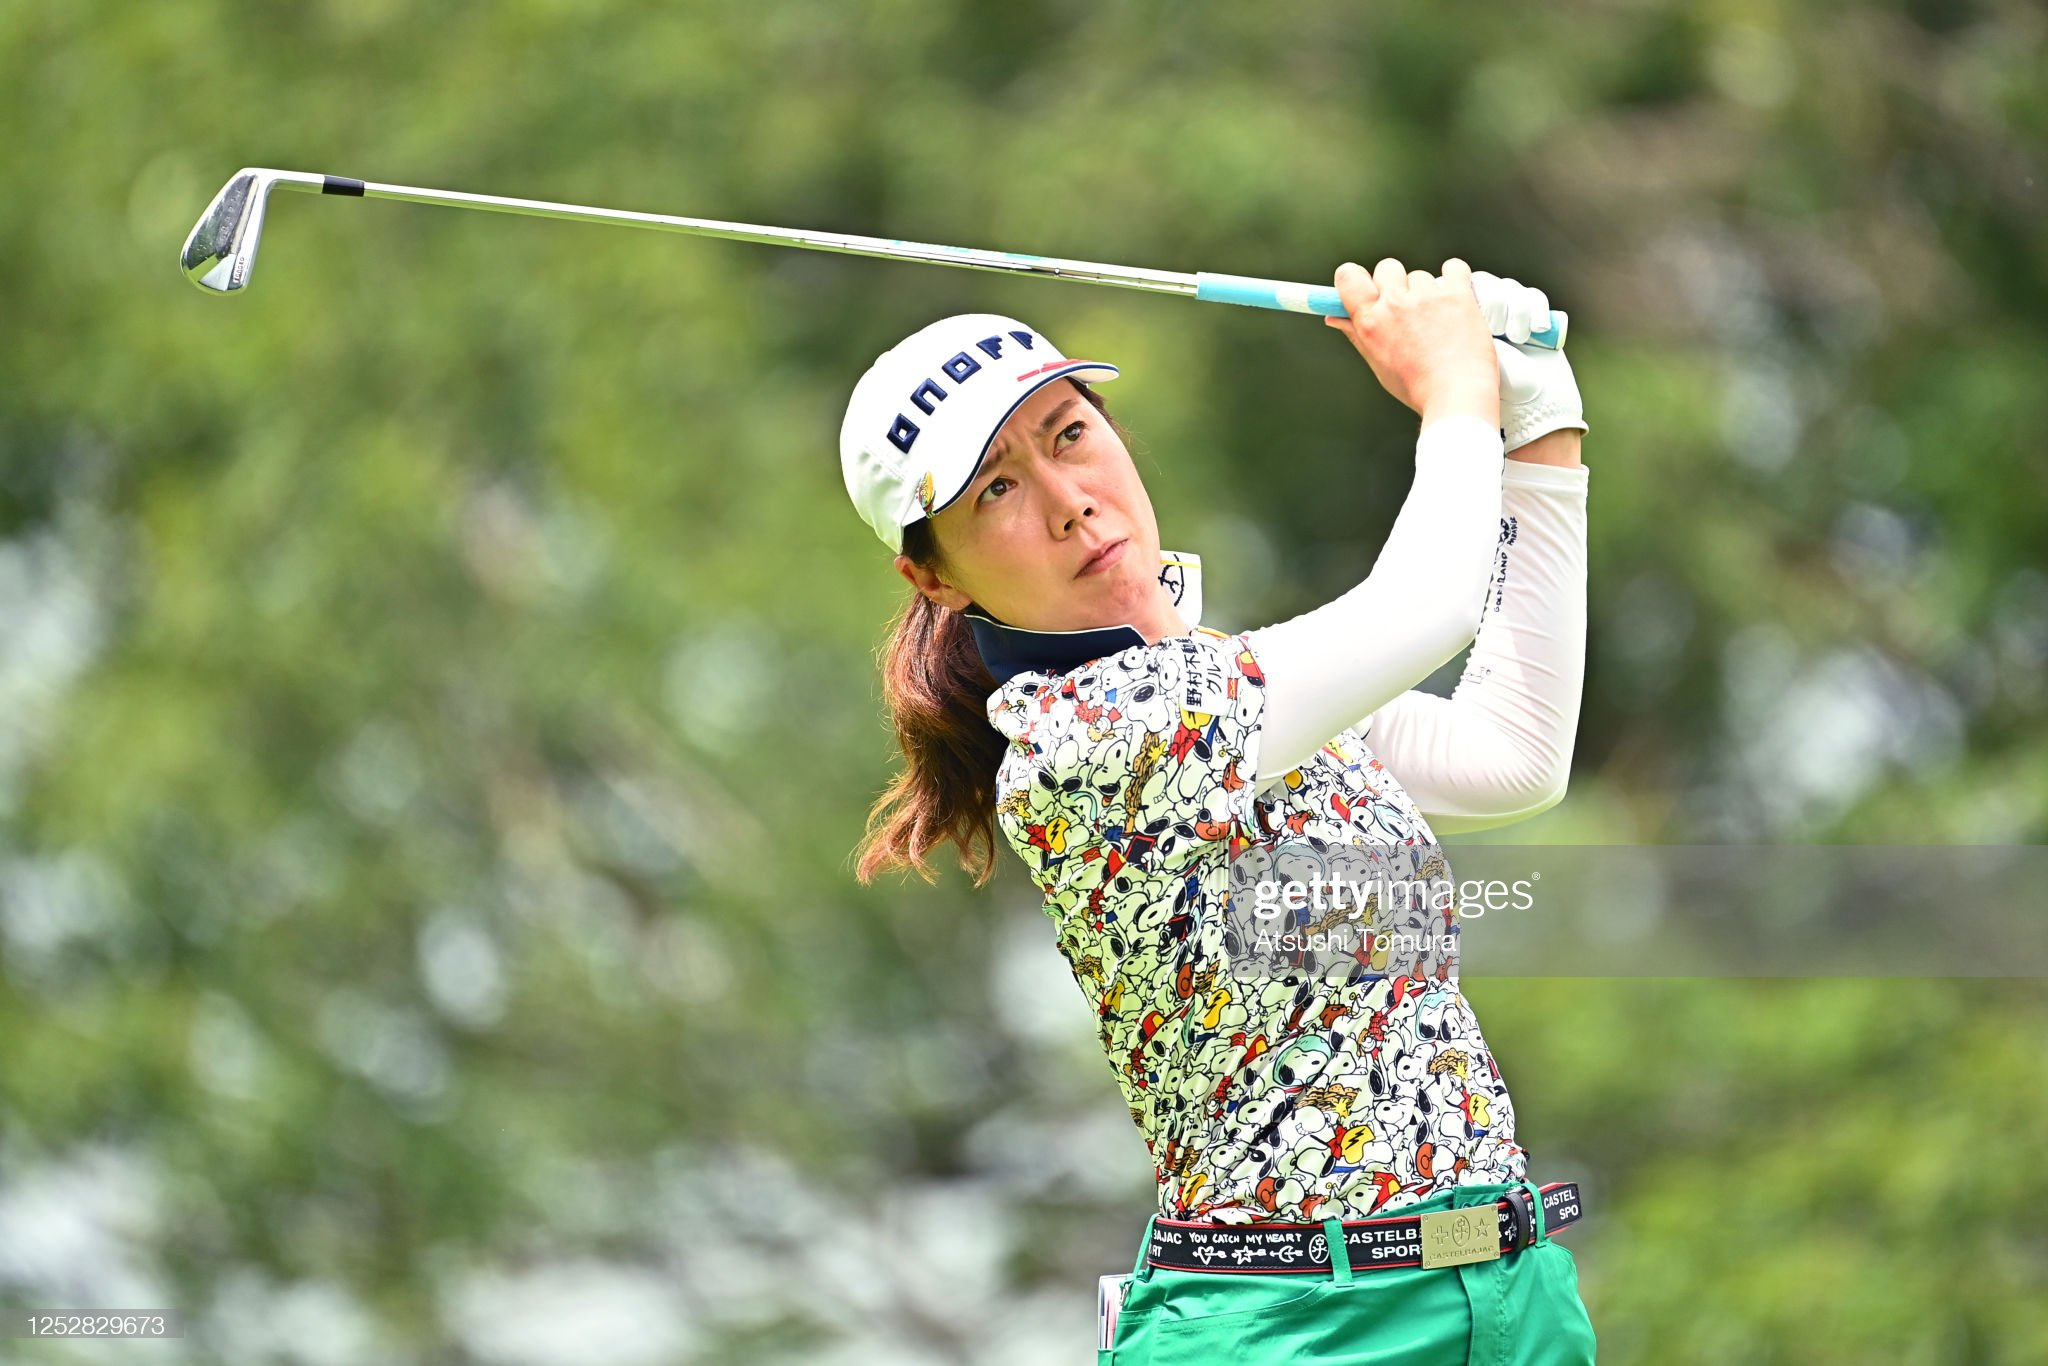 https://media.gettyimages.com/photos/jihee-lee-of-south-korea-hits-her-tee-shot-on-the-15th-hole-during-picture-id1252829673?s=2048x2048